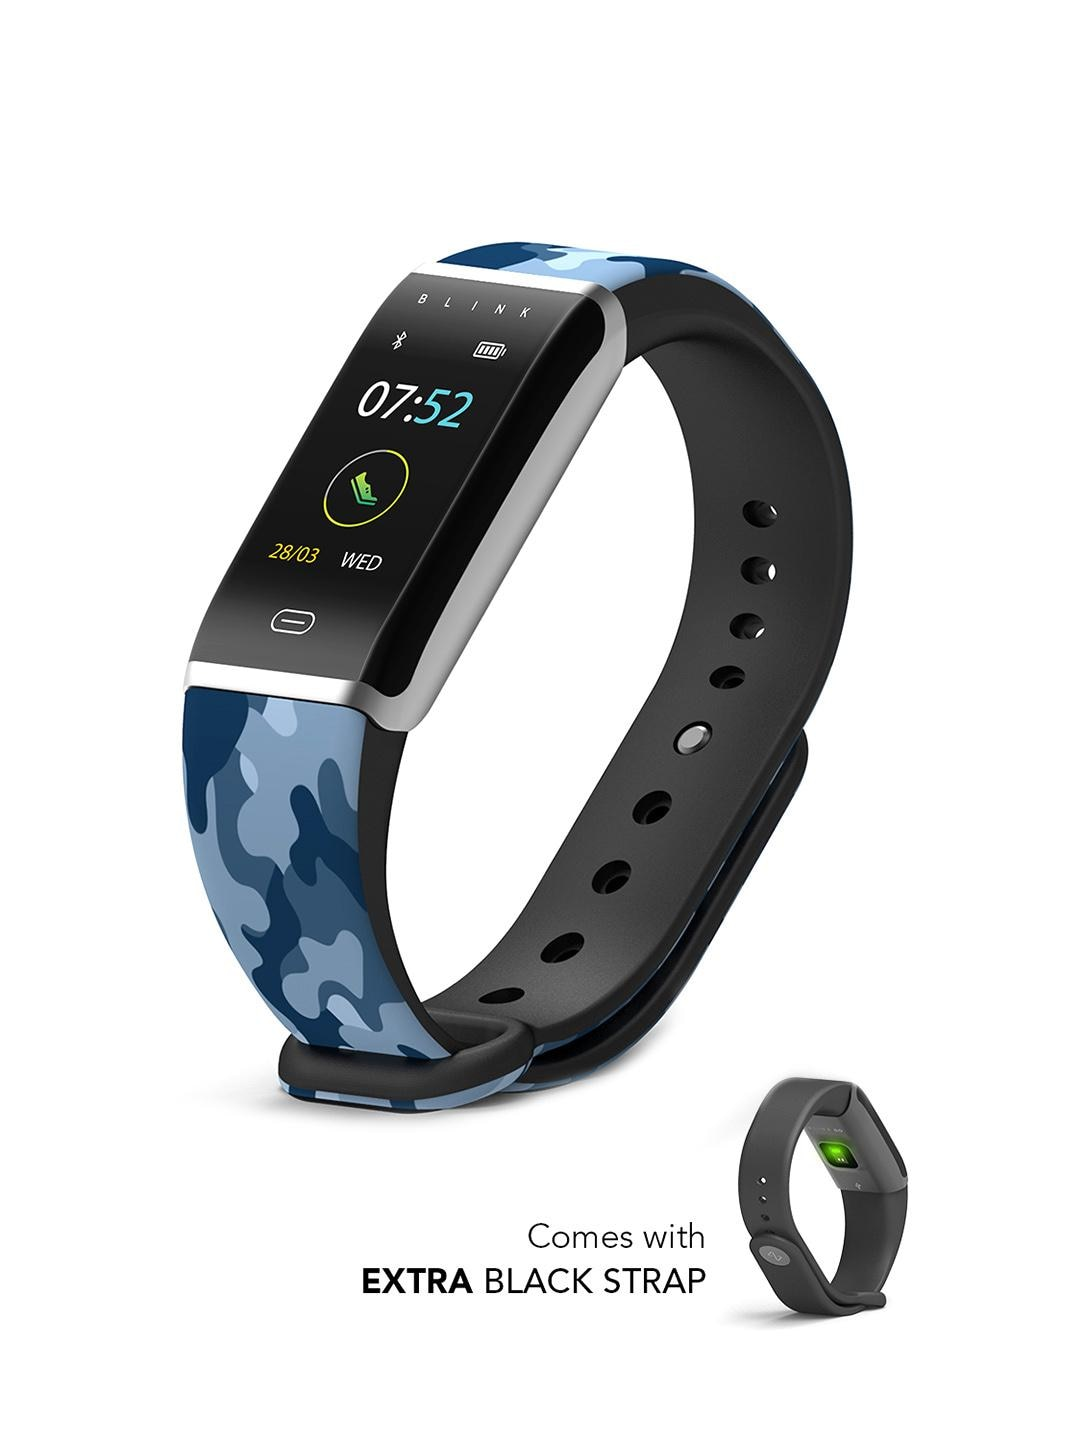 Blink GO - Aqua Silver (extra Black Strap) Fitness Wearable Band